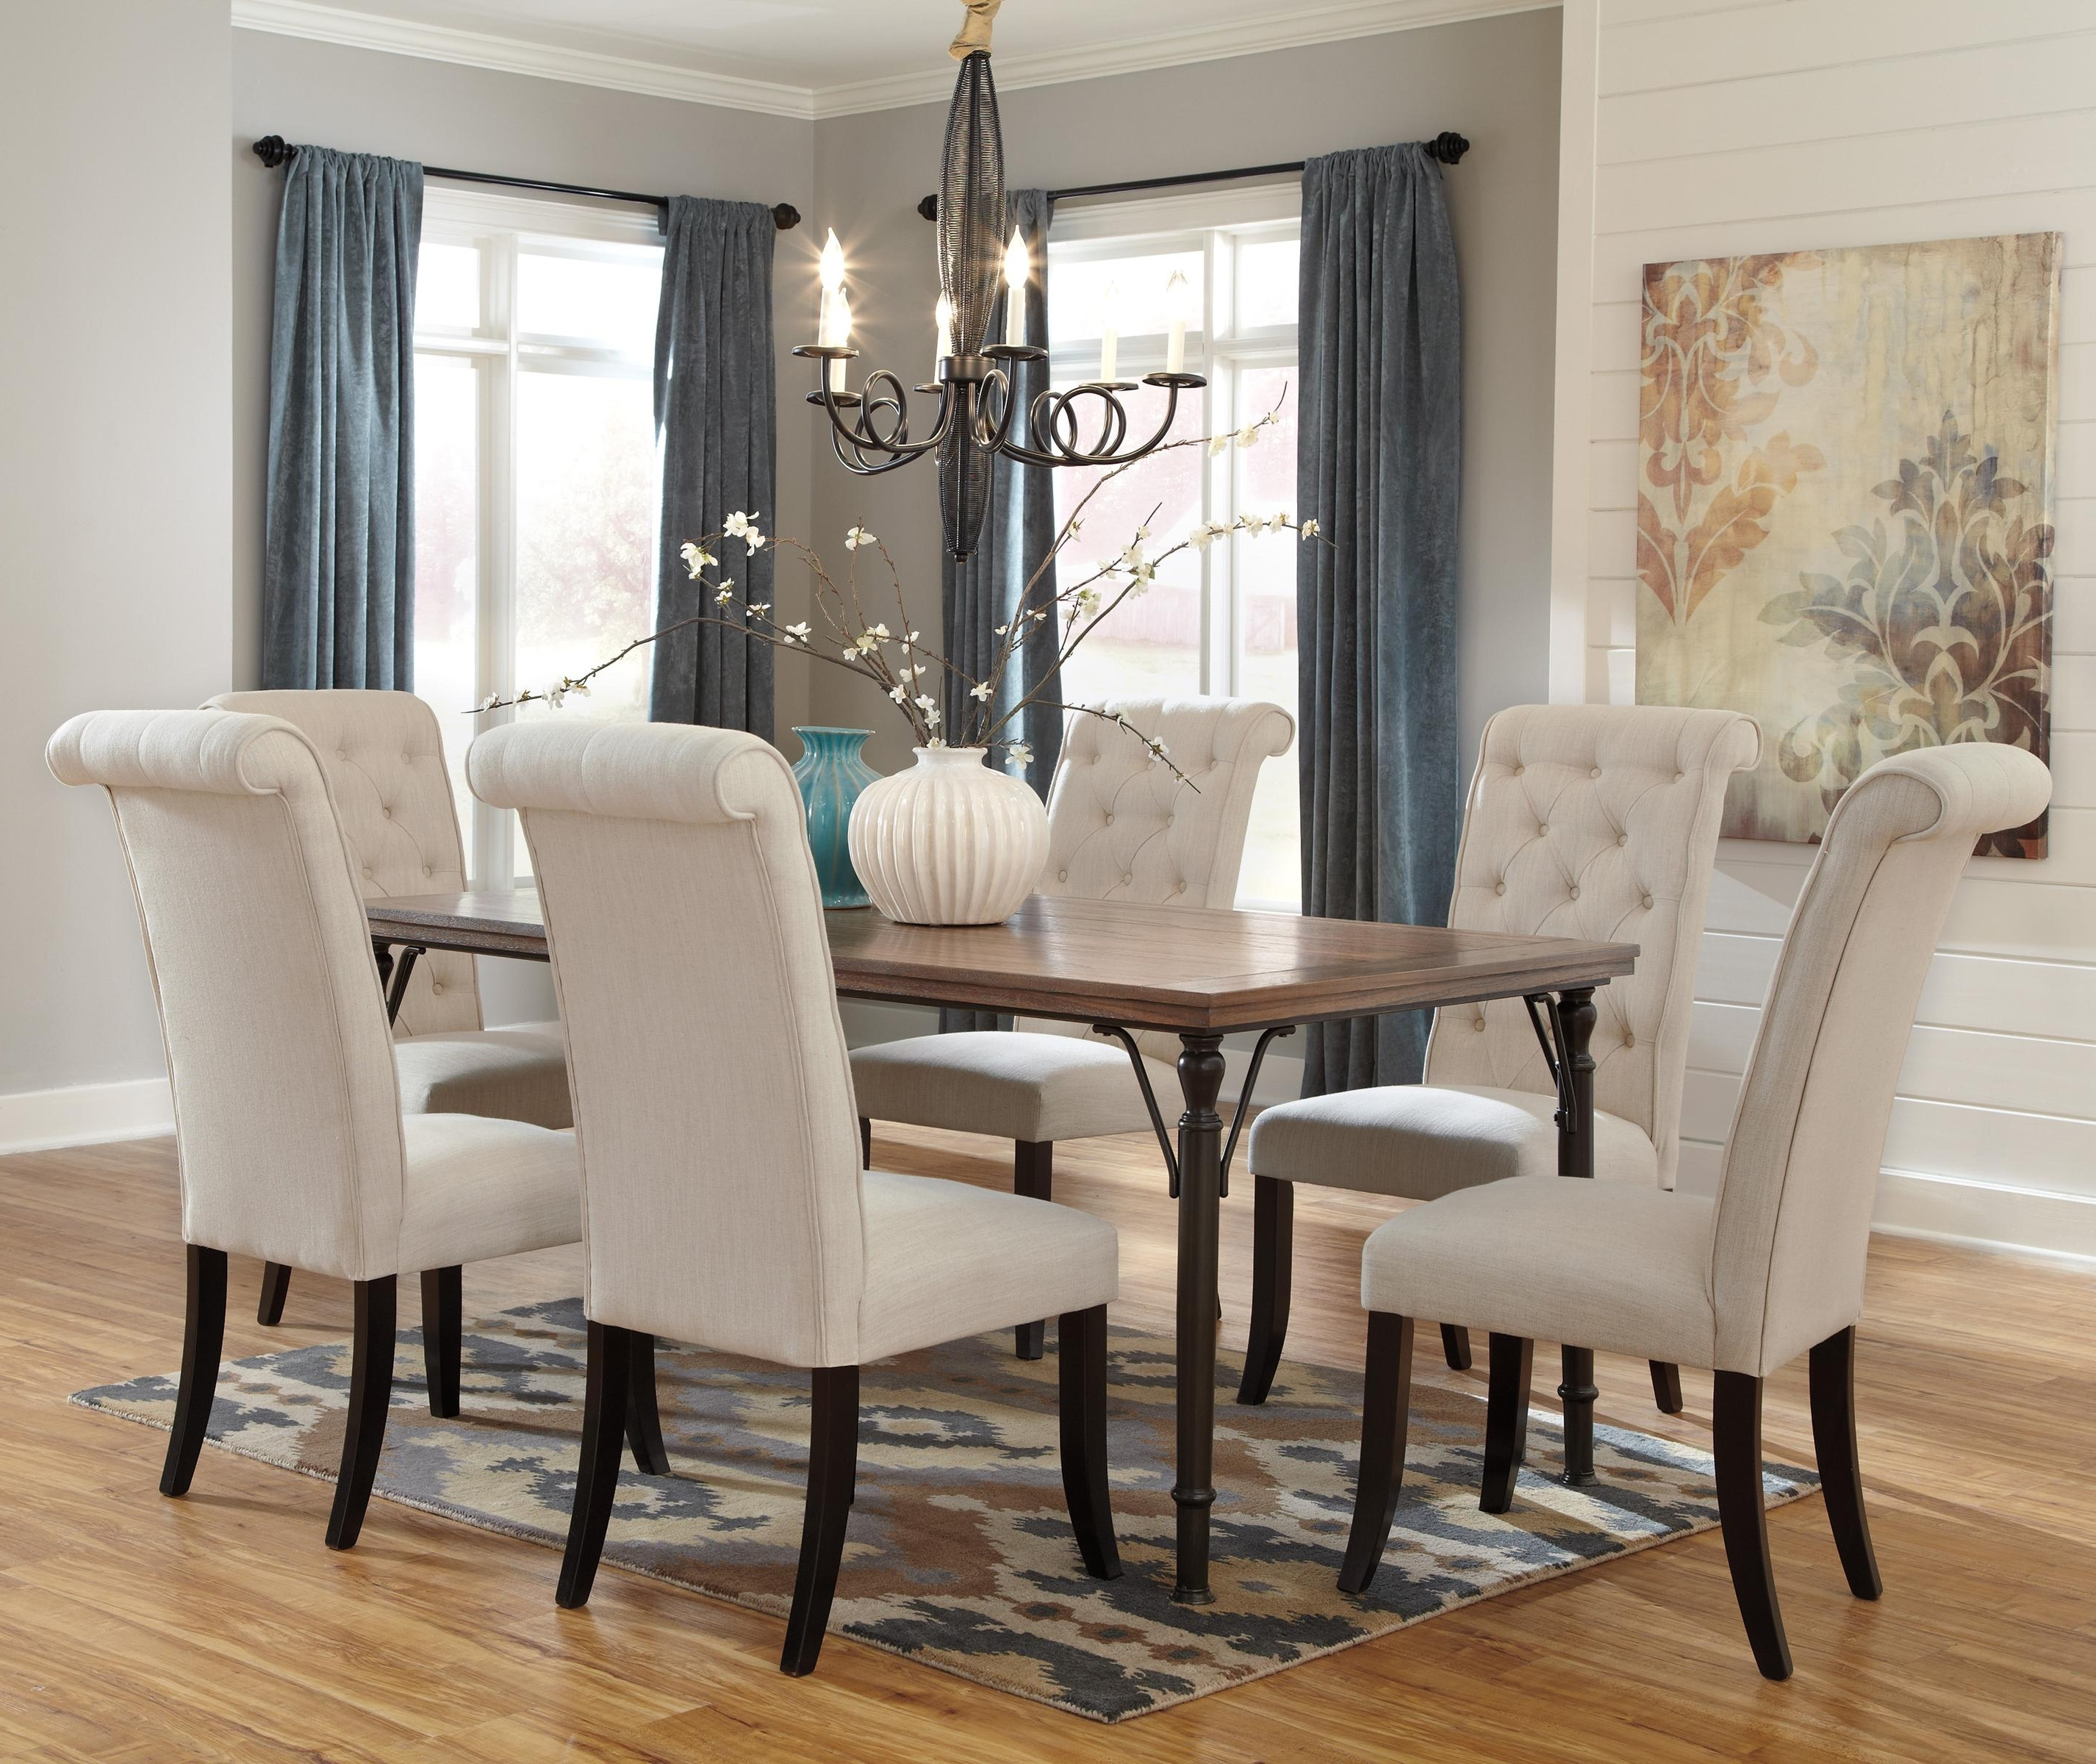 Most Current Parquet 6 Piece Dining Sets For 7 Piece Rectangular Dining Room Table Set W/ Wood Top & Metal Legs (Gallery 7 of 25)